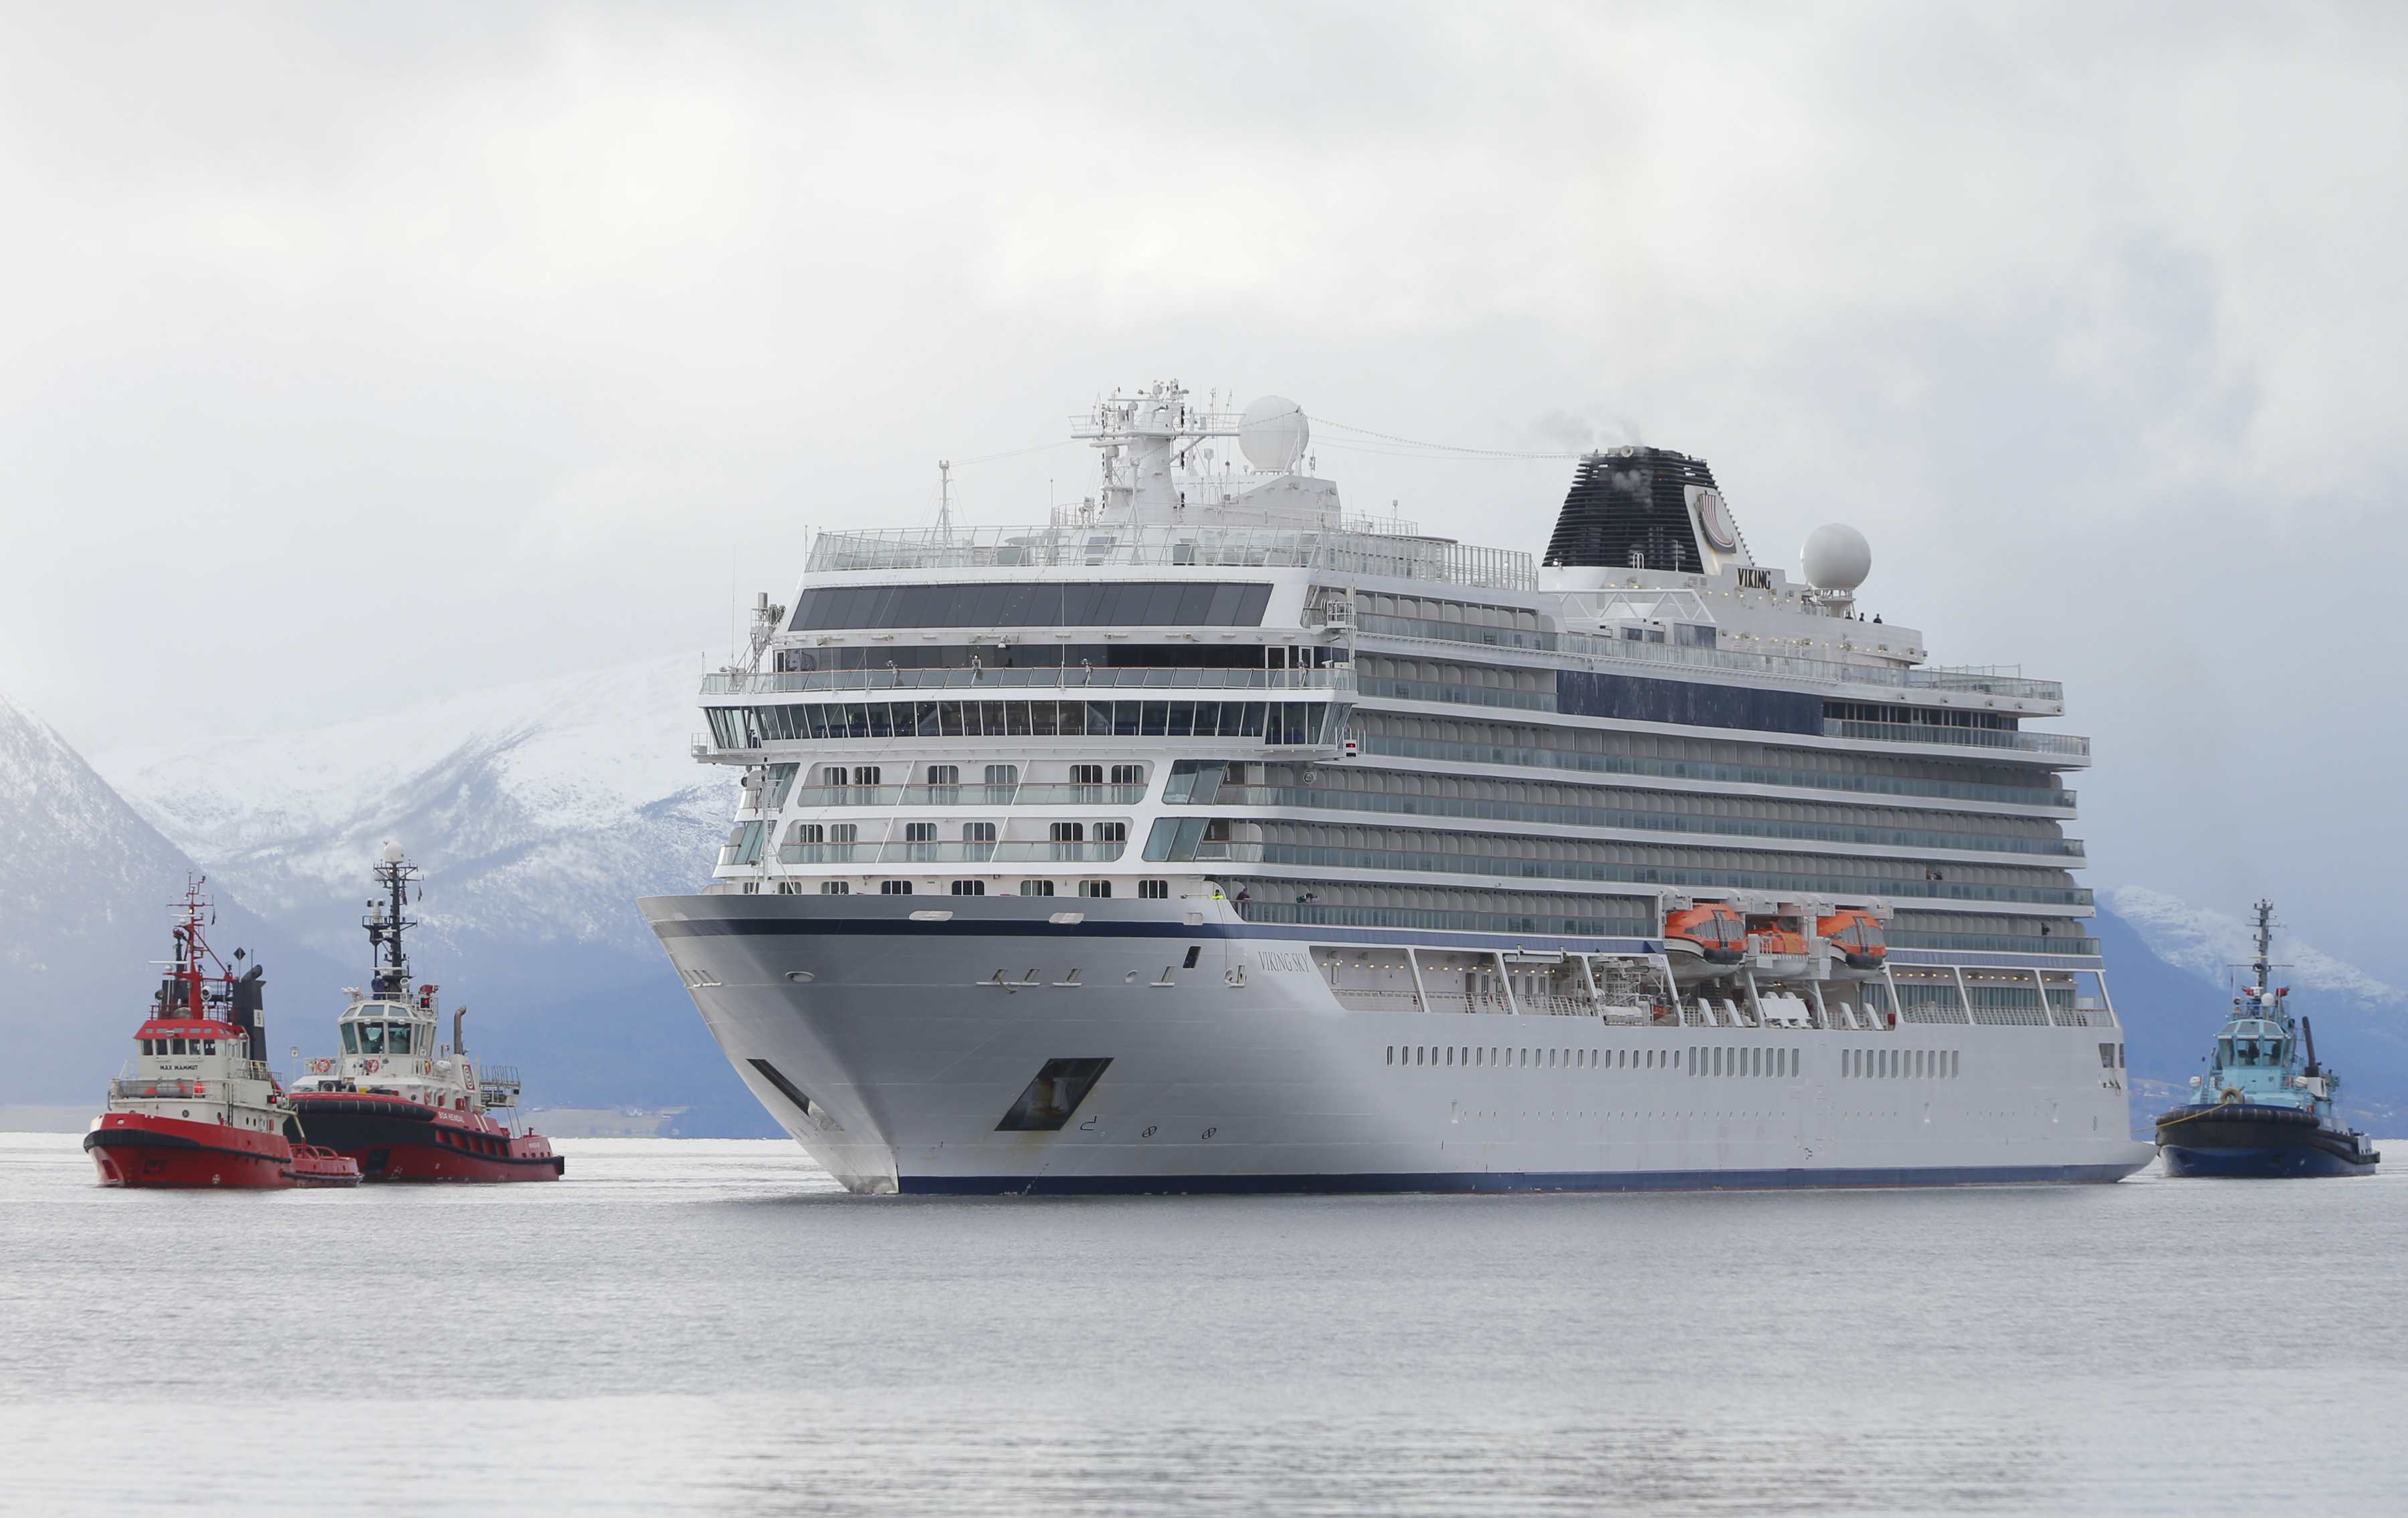 The cruise ship Viking Sky arrives at port off Molde, Norway, Sunday March 24, 2019, after the problems in heavy seas off Norway's western coast. Rescue helicopters took more than 475 passengers from a cruise ship that got stranded off Norway's western coast in bad weather before the vessel departed for a nearby port under escort and with nearly 900 people still on board, the ship's owner said Sunday. (Svein Ove Ekornesvag/NTB scanpix via AP)